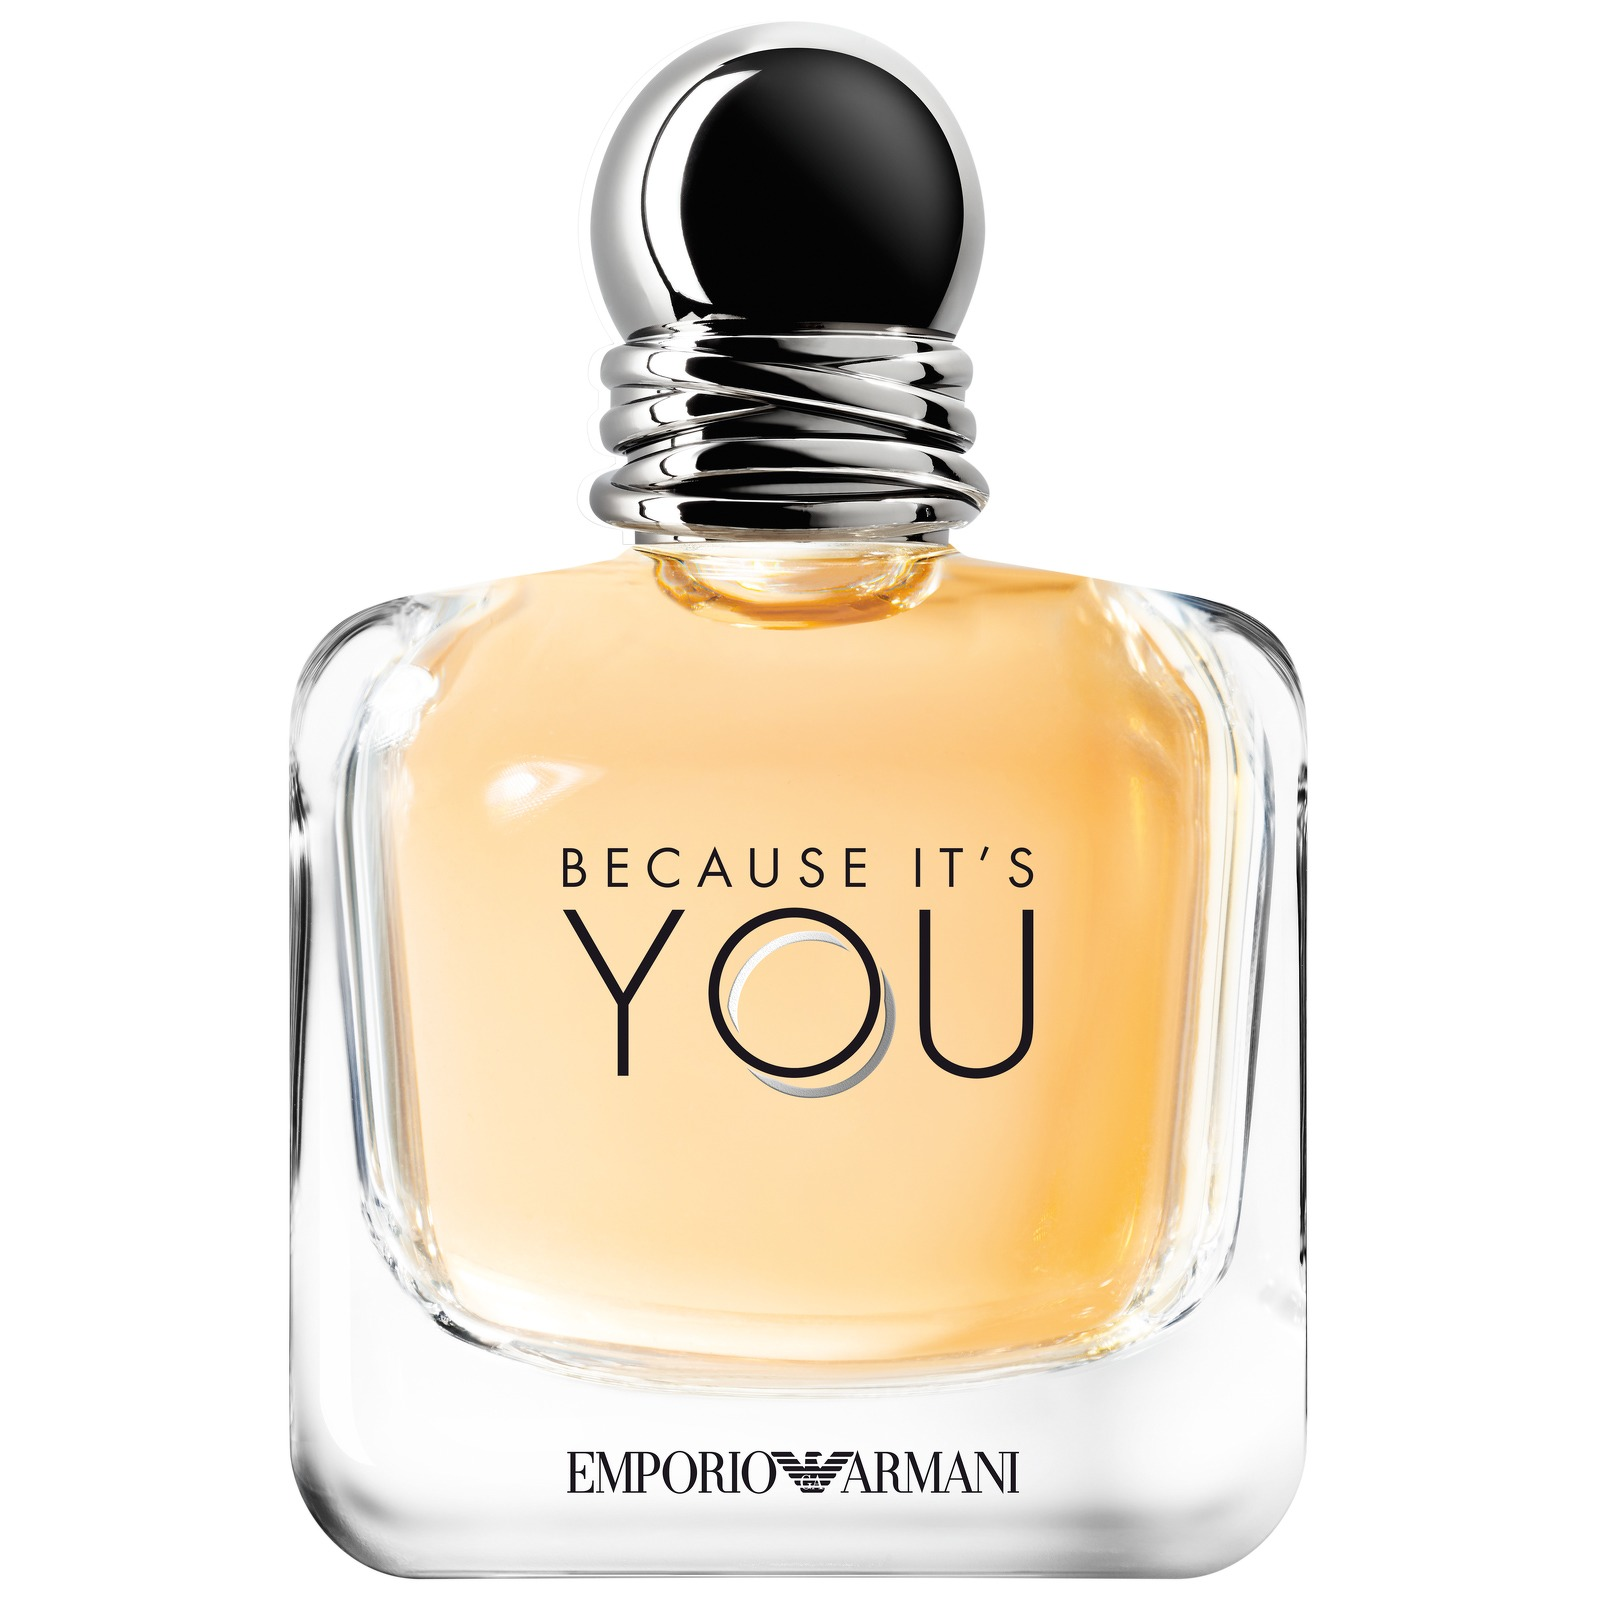 Armani Because It's You Eau de Parfum Spray 100ml